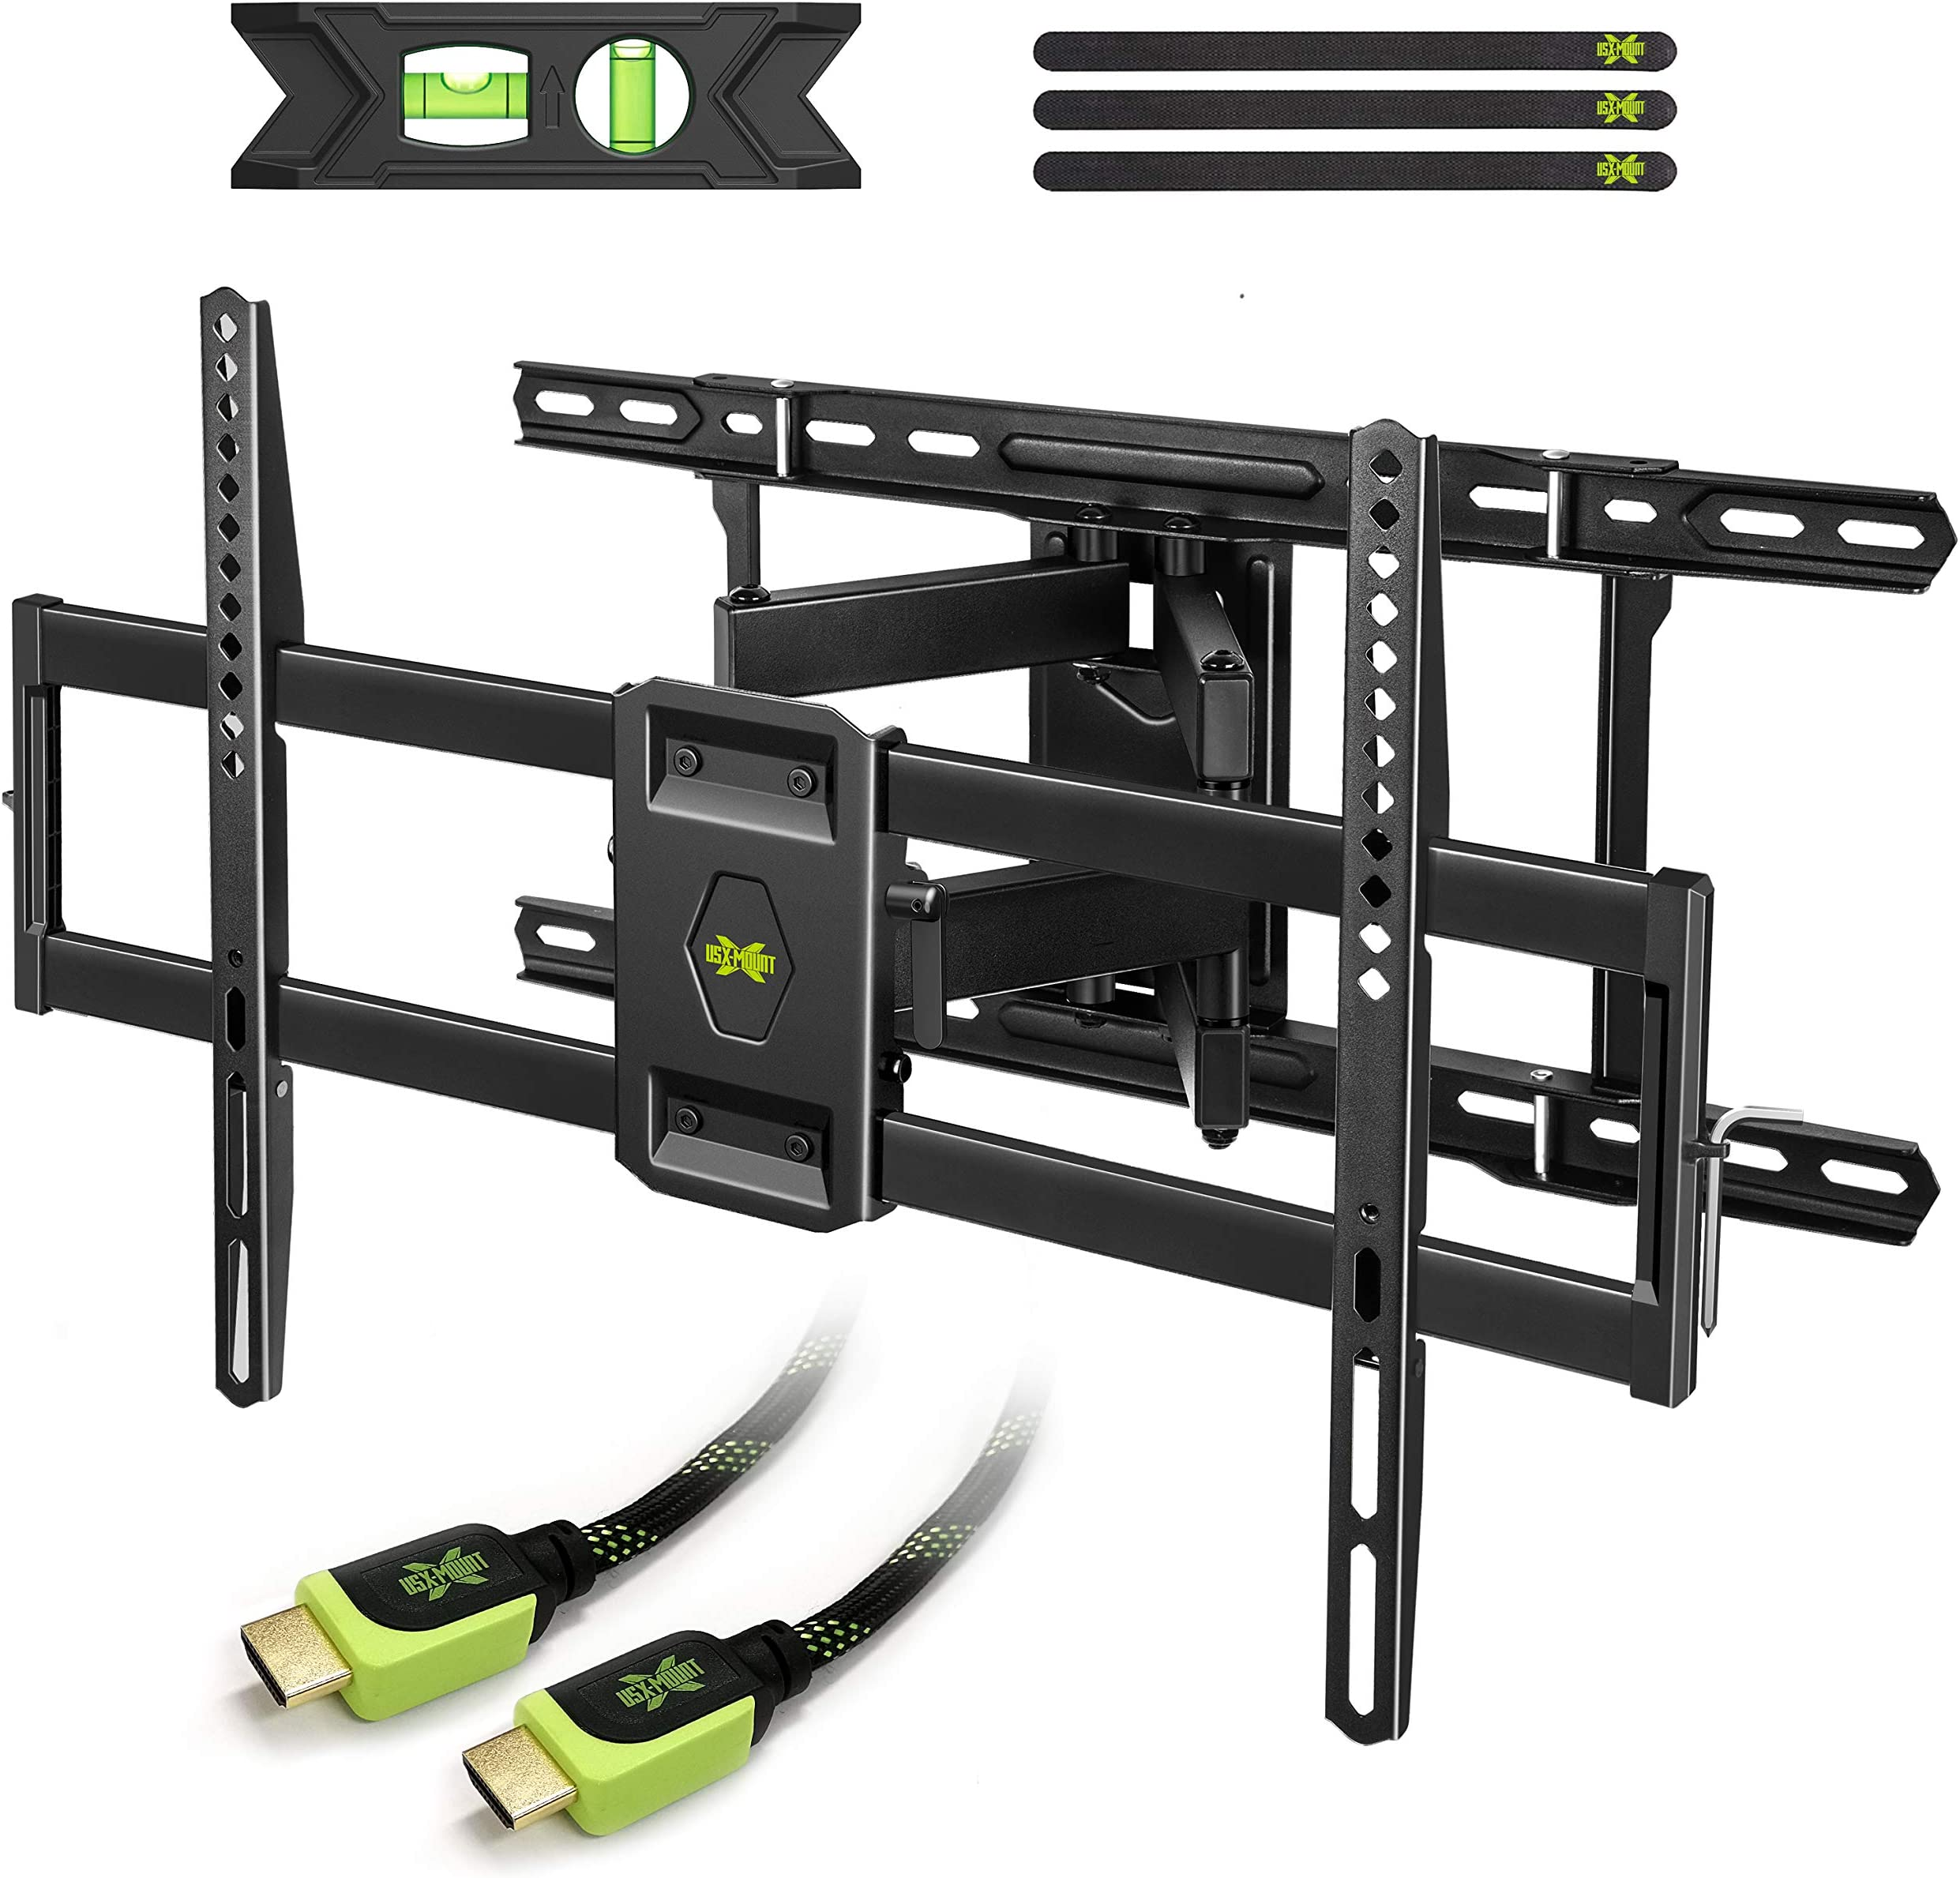 """USX MOUNT Full Motion TV Mount Wall Bracket for 42""""-80"""" Flat Screen LED LCD 4K TV, Tilt Swivel TV Mounts with Articulating Arms Max VESA 600x400mm, Weight Capacity 110lbs Up to 24"""" Wood Stud"""